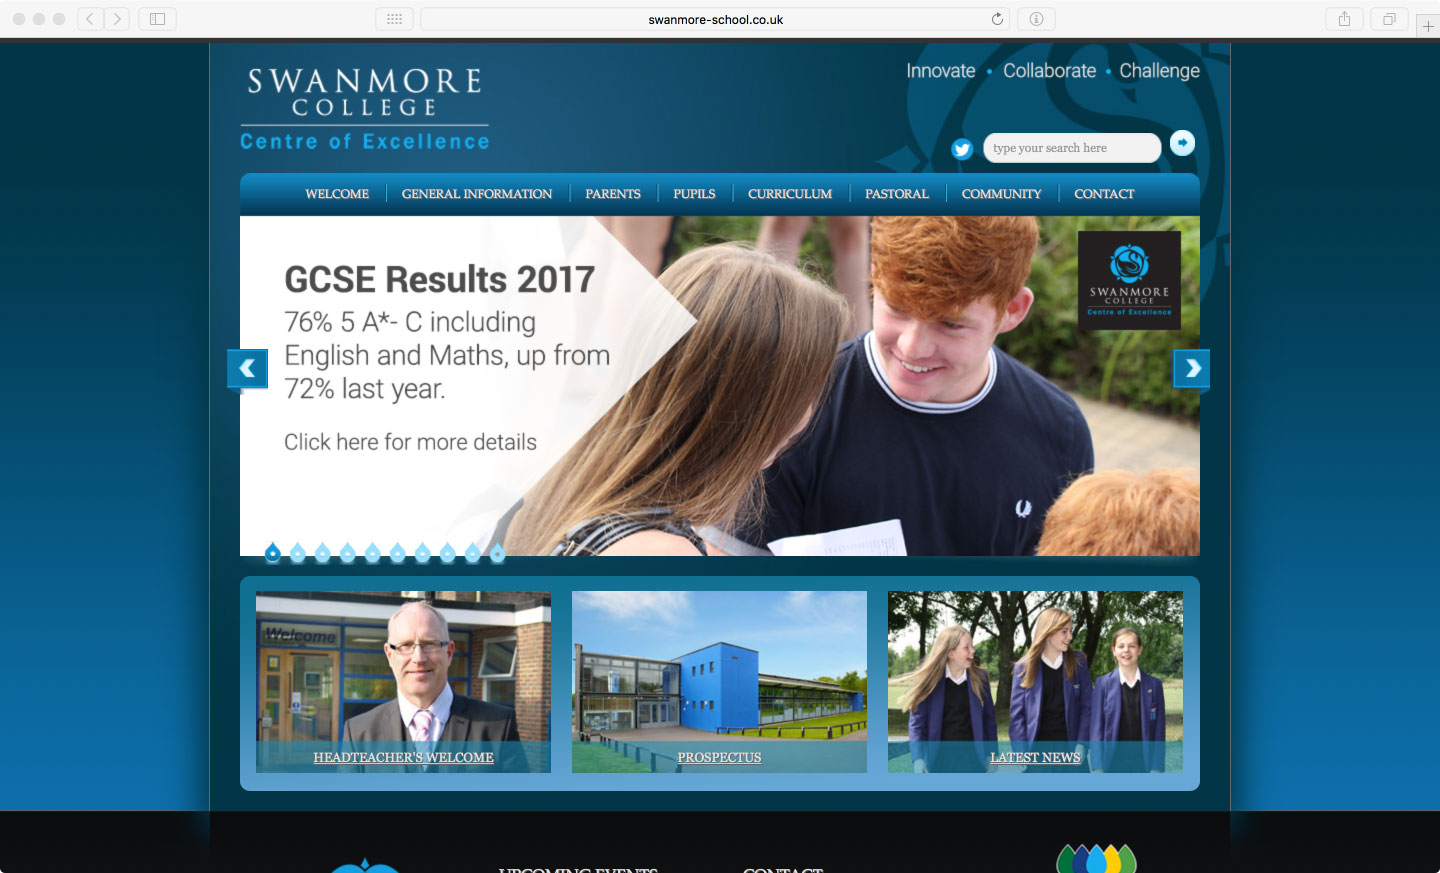 Swanmore College of Technology